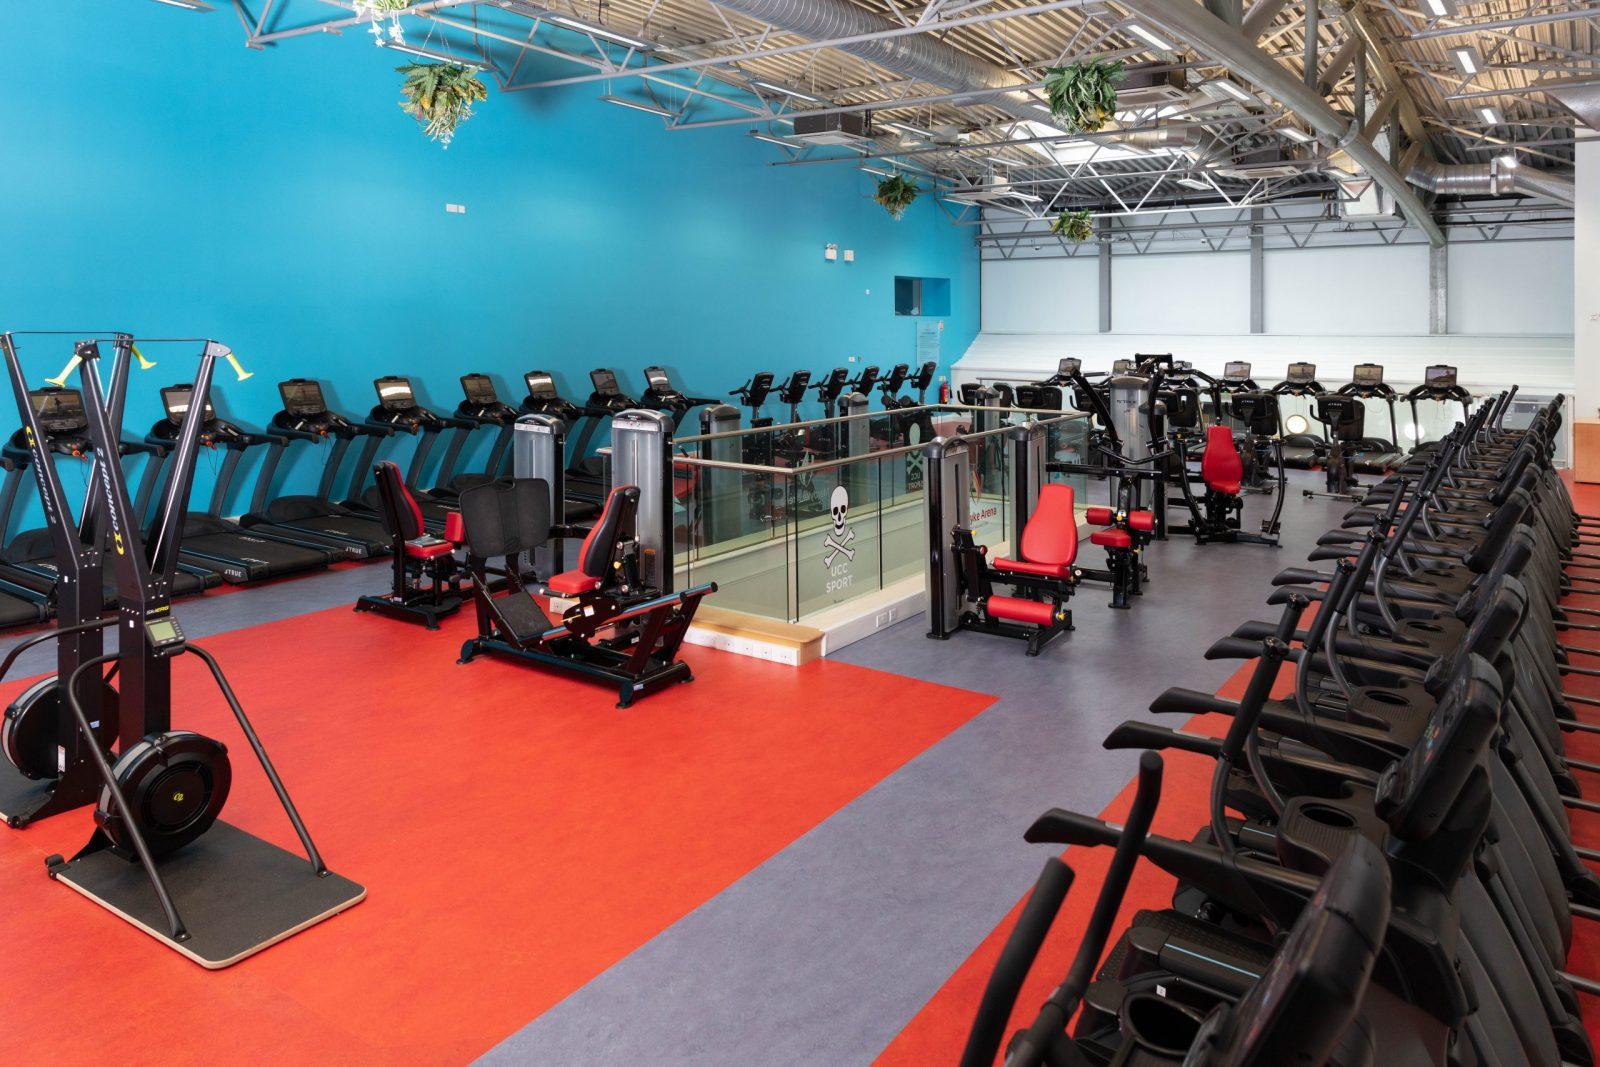 an exercise room with cardio machines